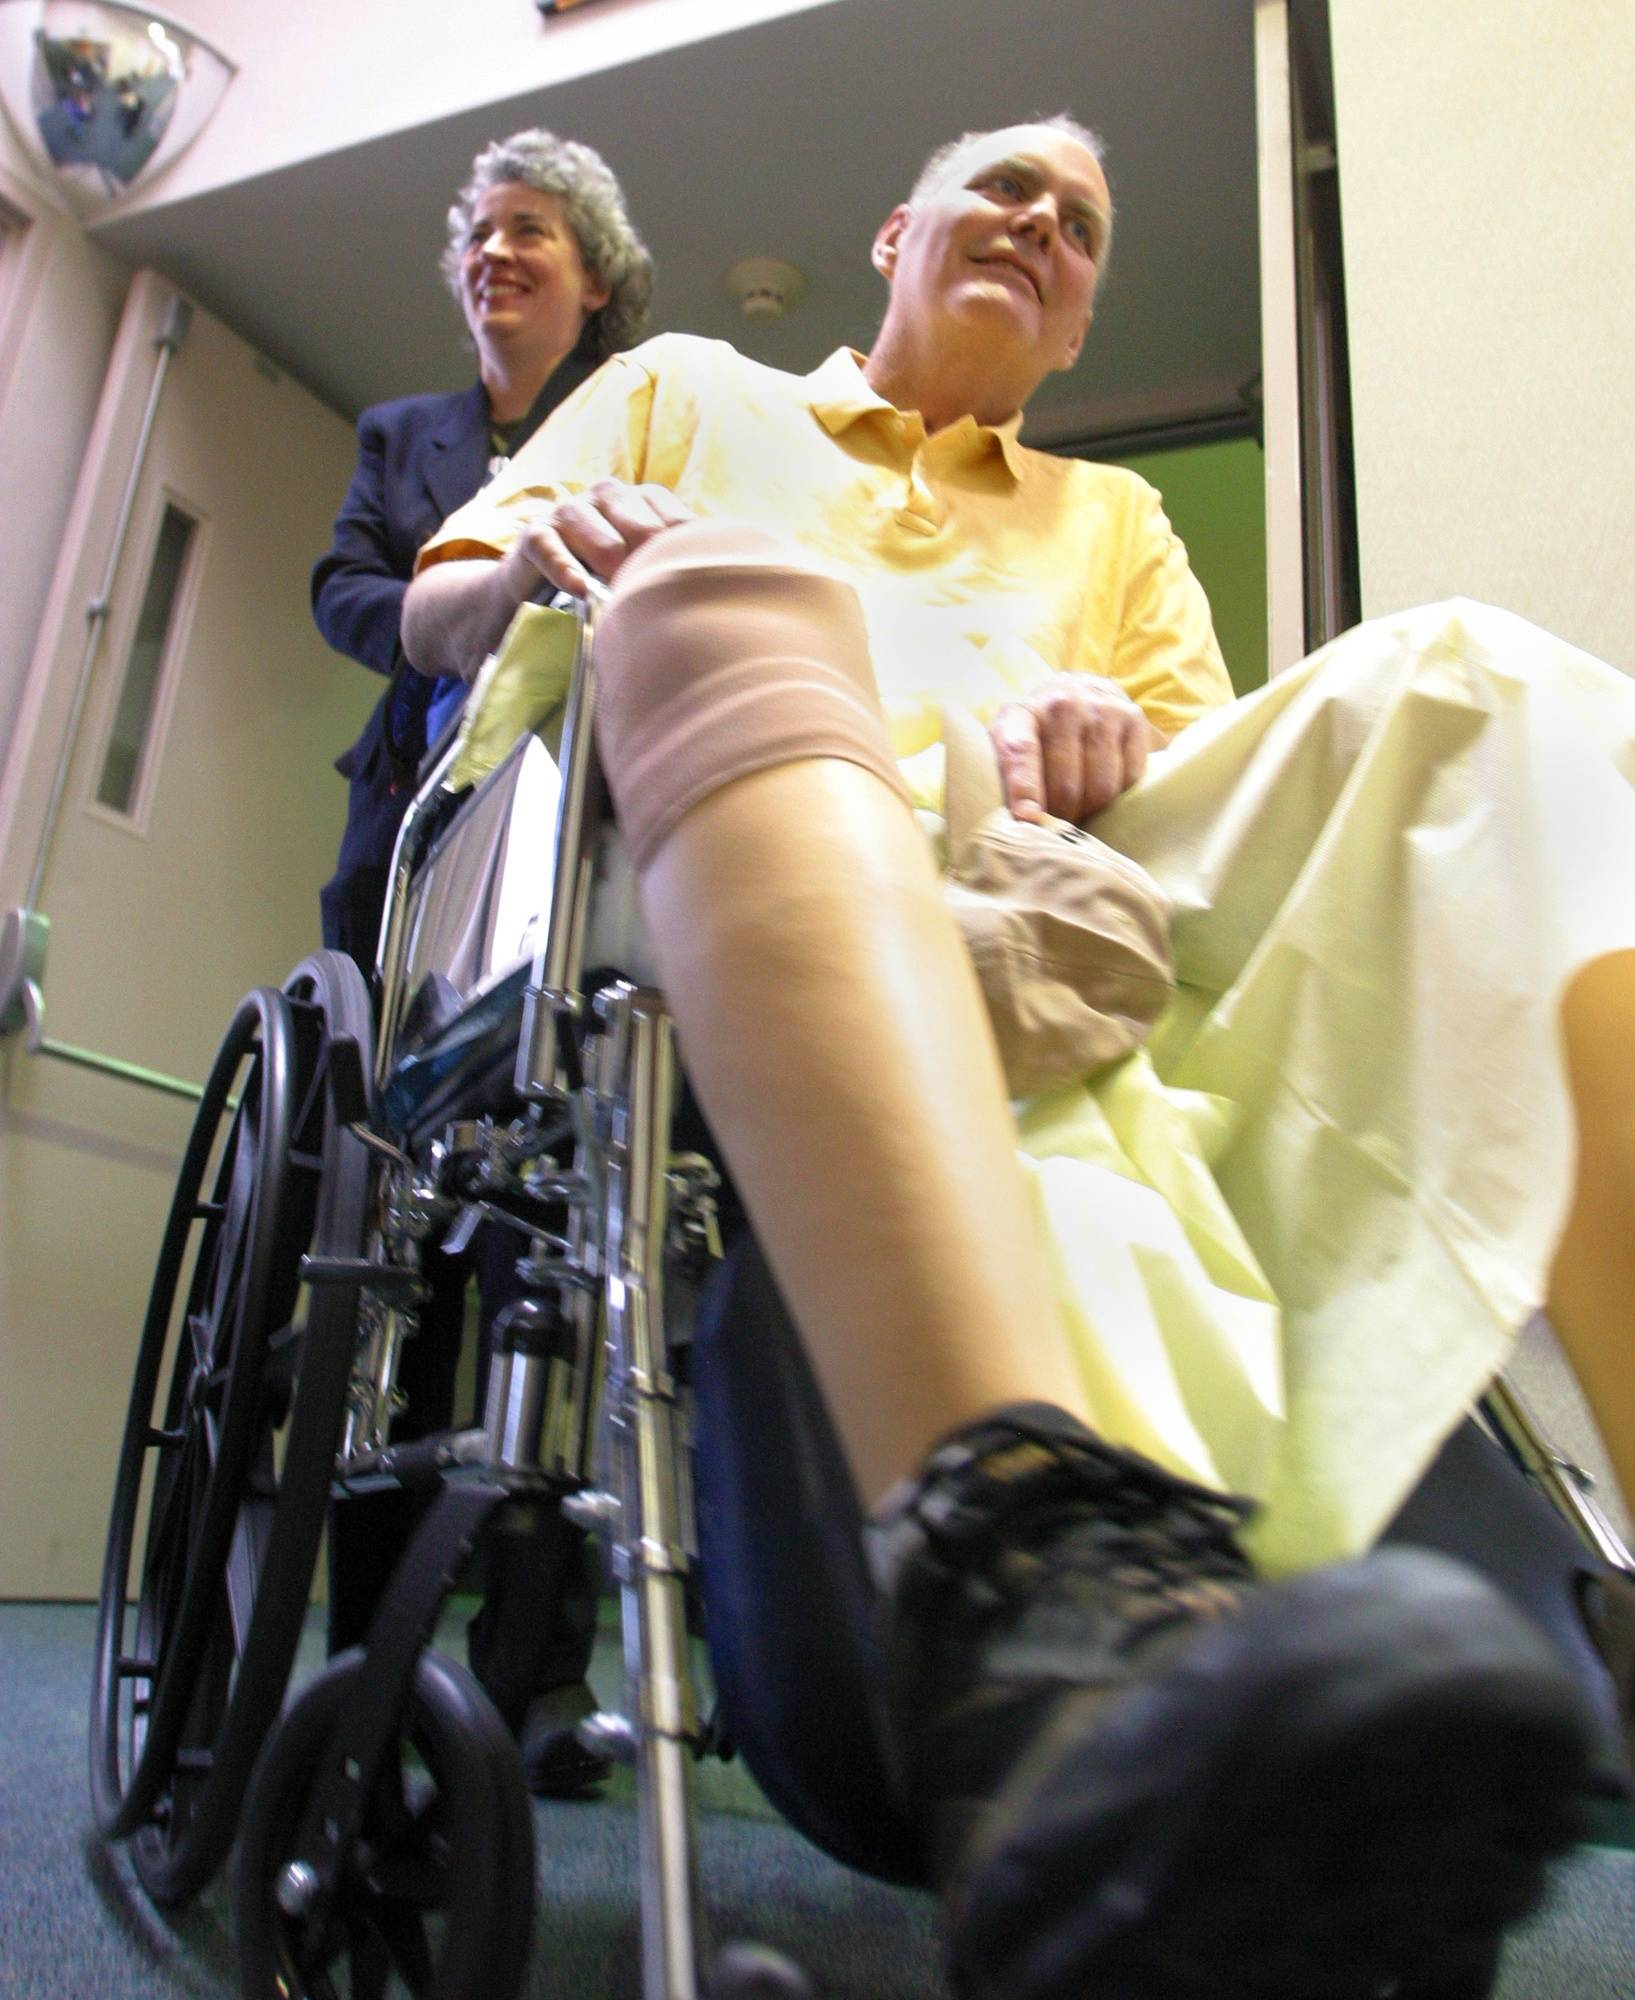 John Tull, right, is wheeled out of a news conference by his wife, Lucinda Marker, at the Kindred Hospital in Albuquerque, N.M.